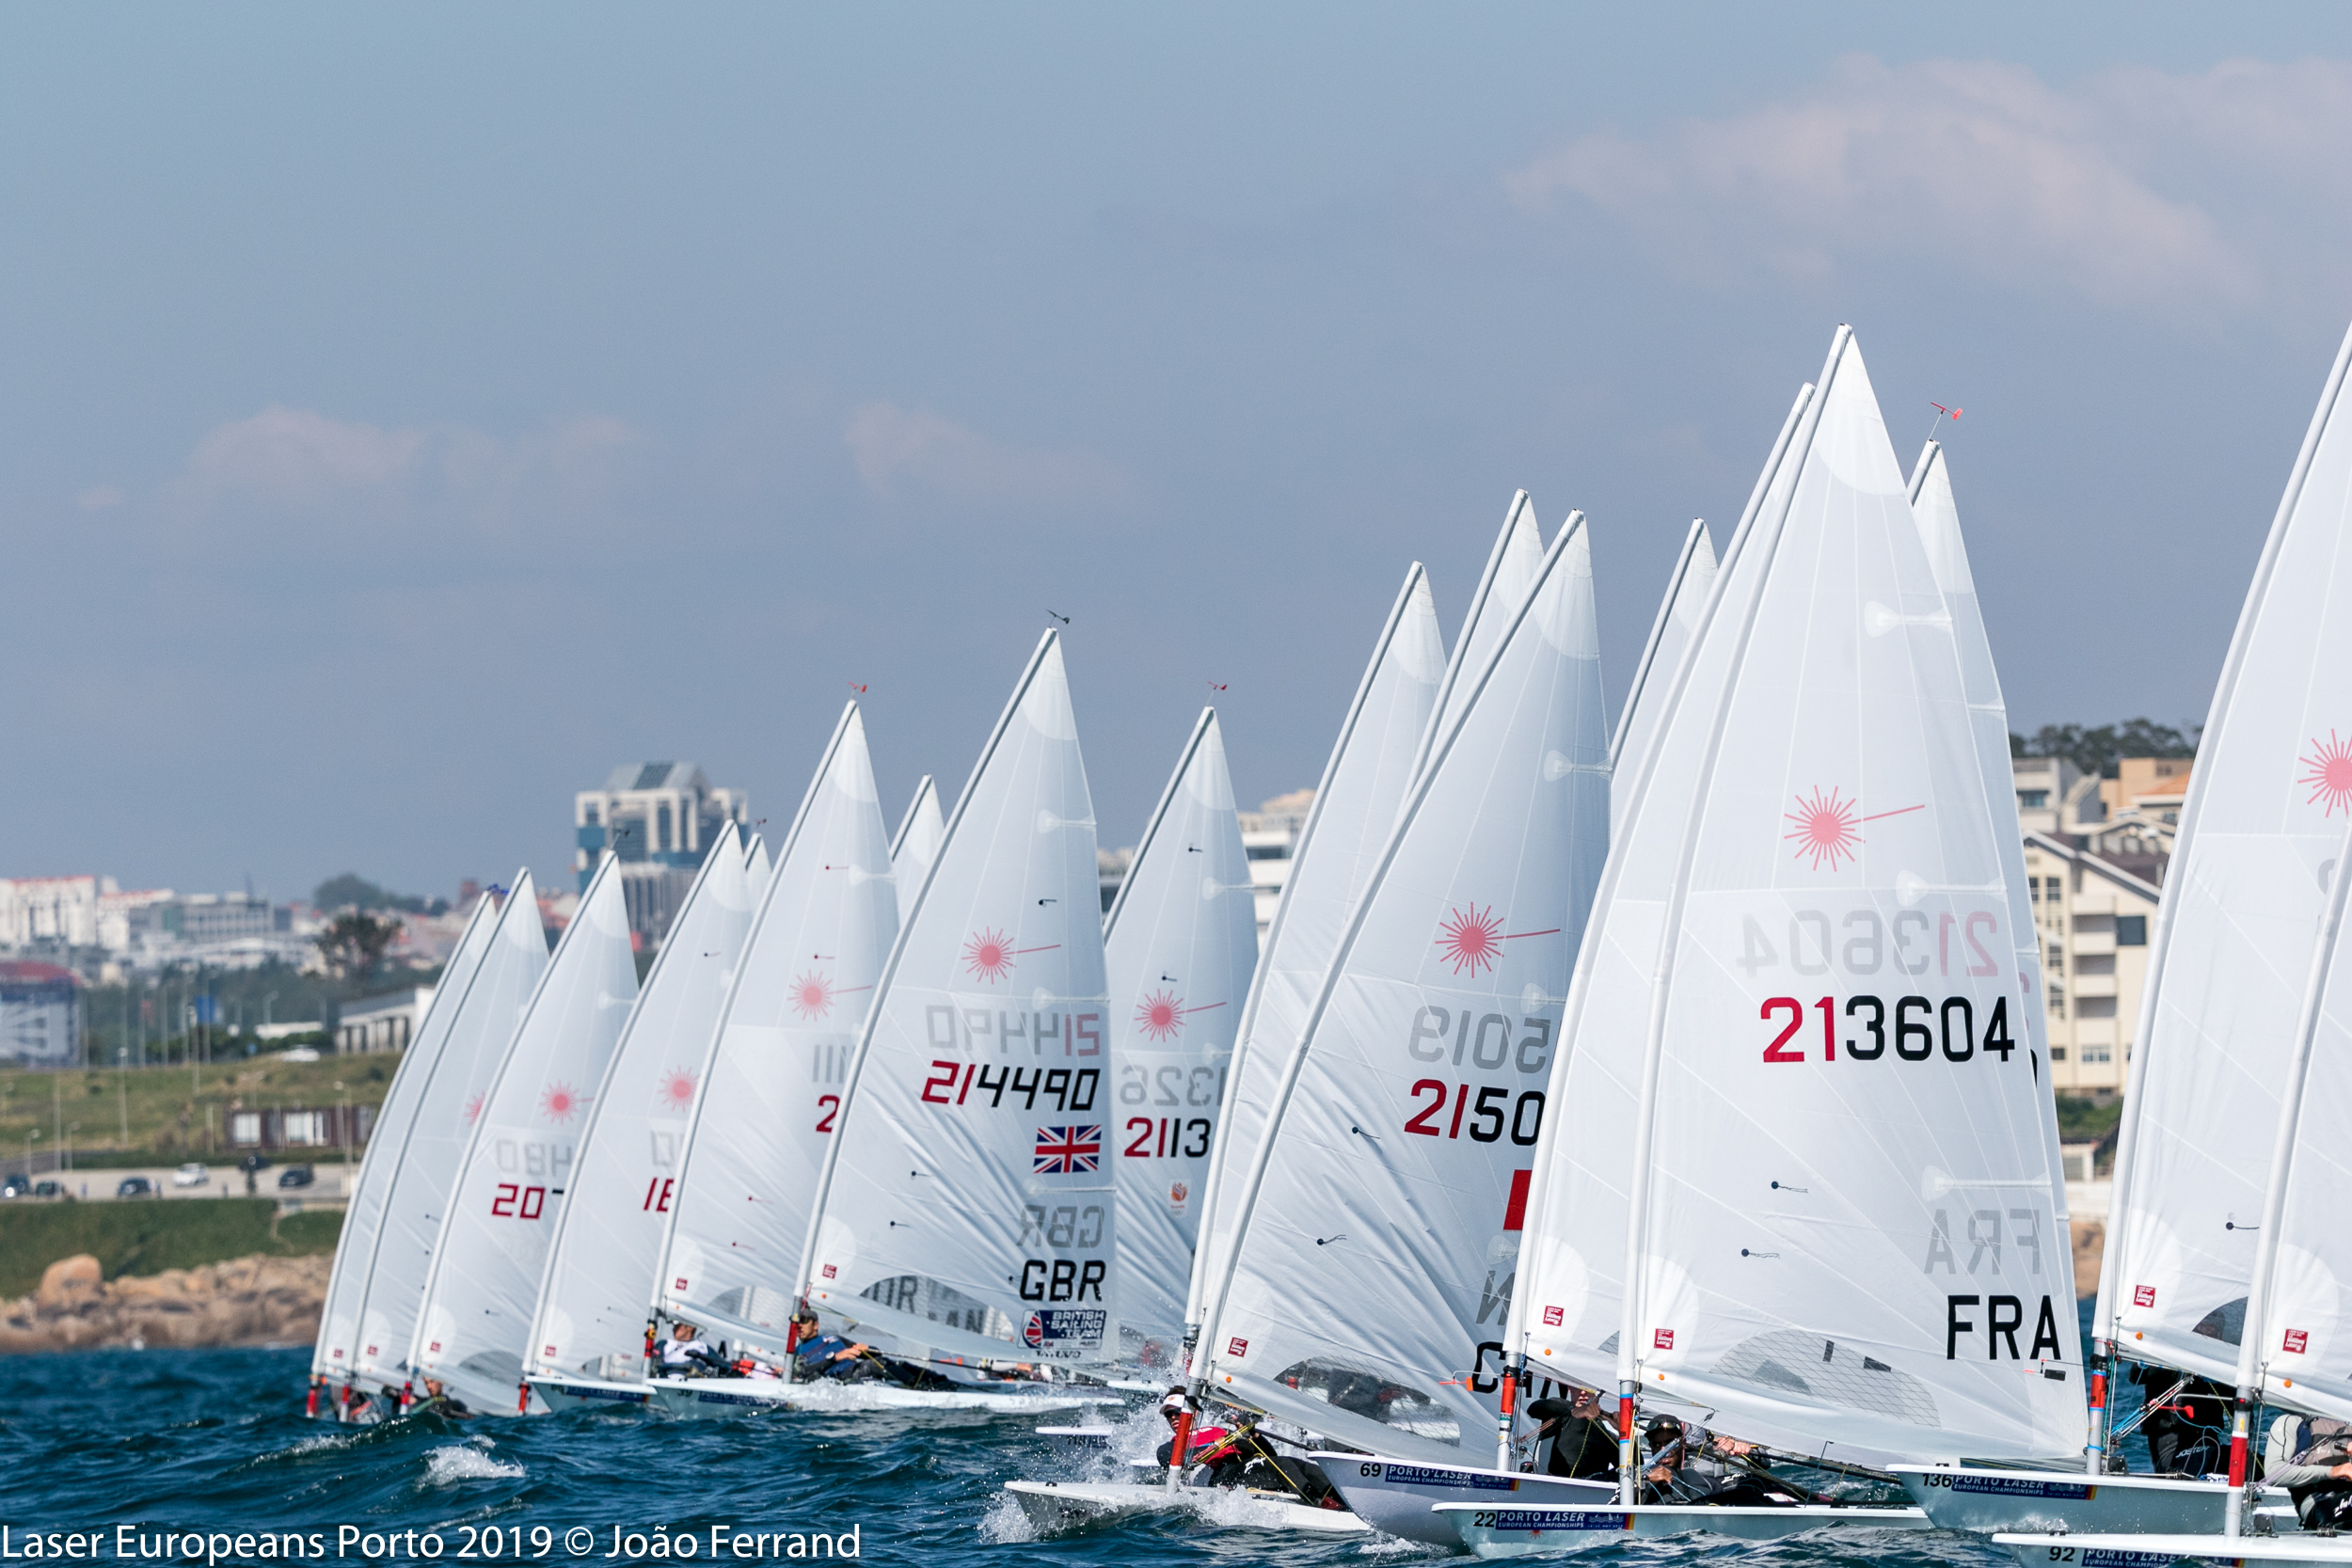 Good starts were my goal and they were key to doing well. This photograph captures one of my starts in the qualifying races. (middle of photo - sail #215019)